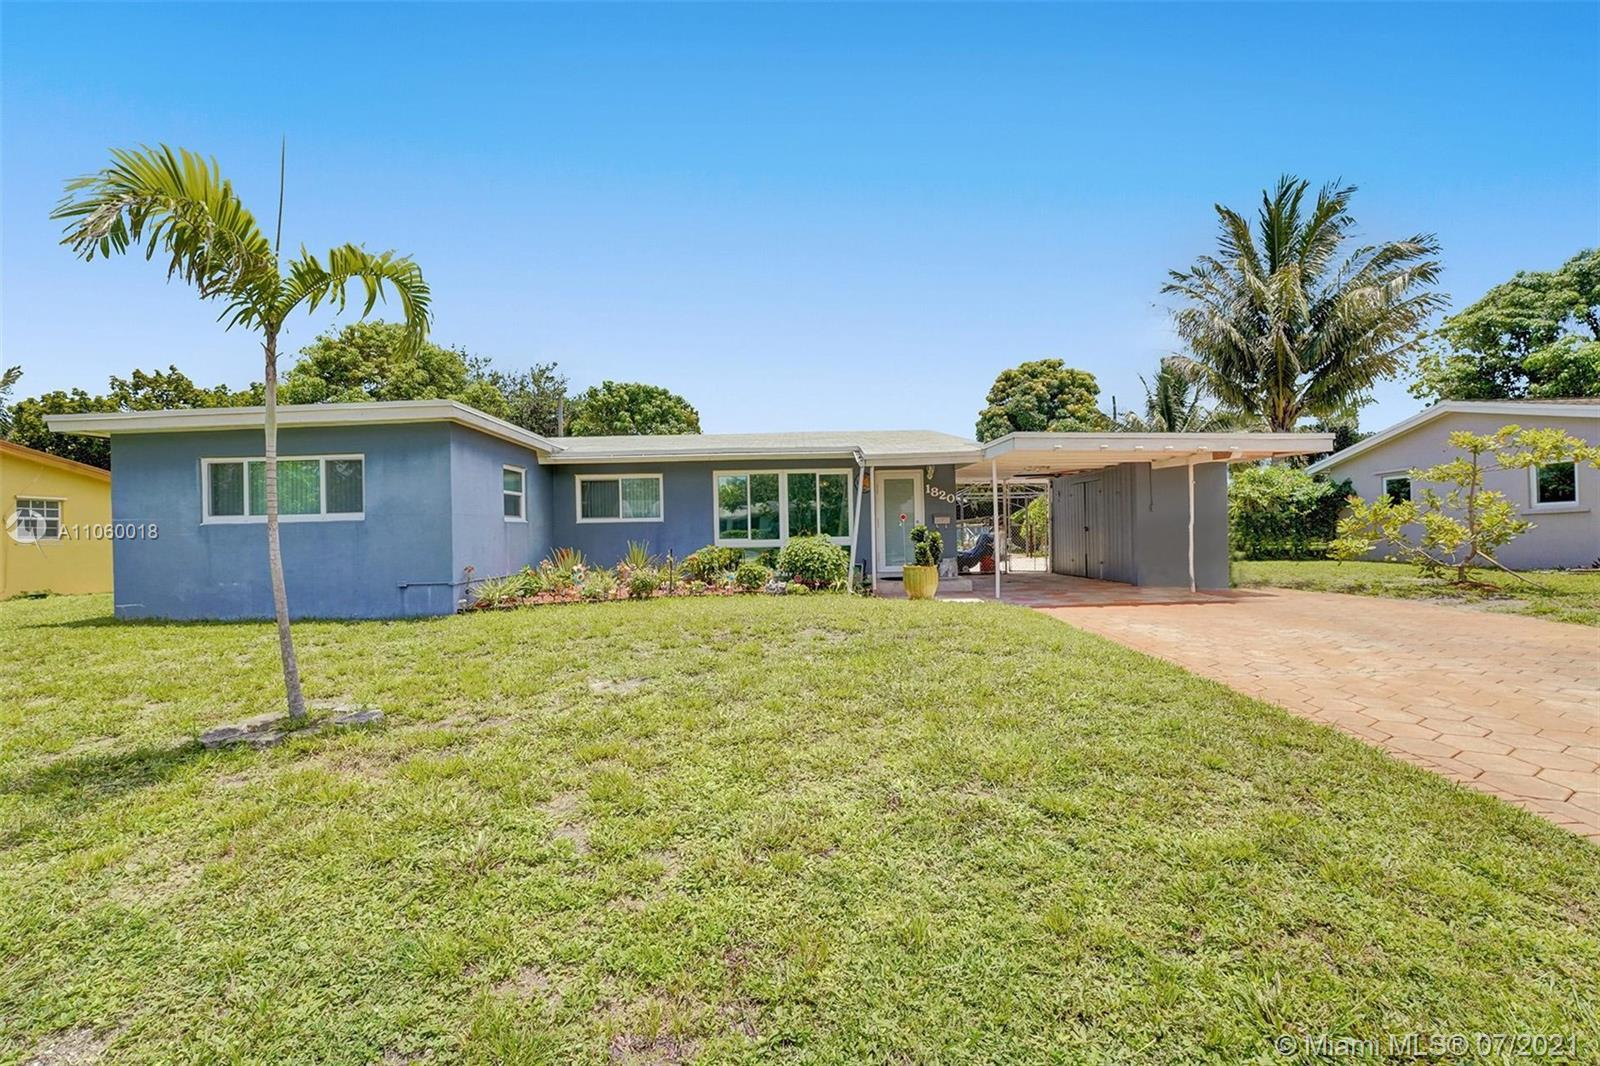 Charming residence with 4beds /2.baths and pool situated in the HEART of Fort Laderdale /441.This ho